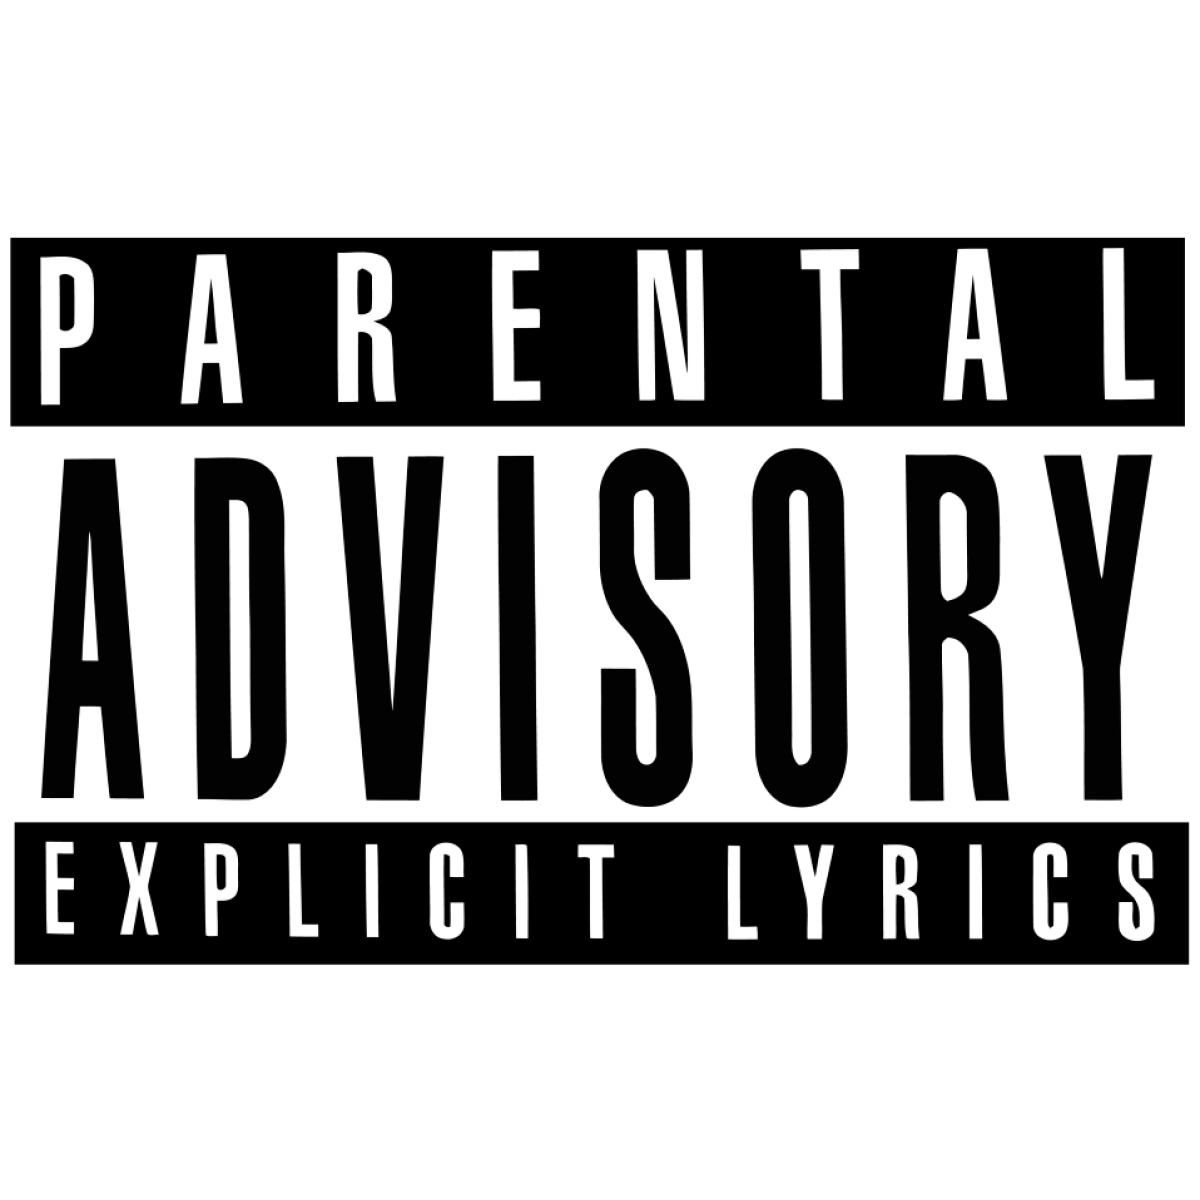 HD Parental Advisory Png image #43523